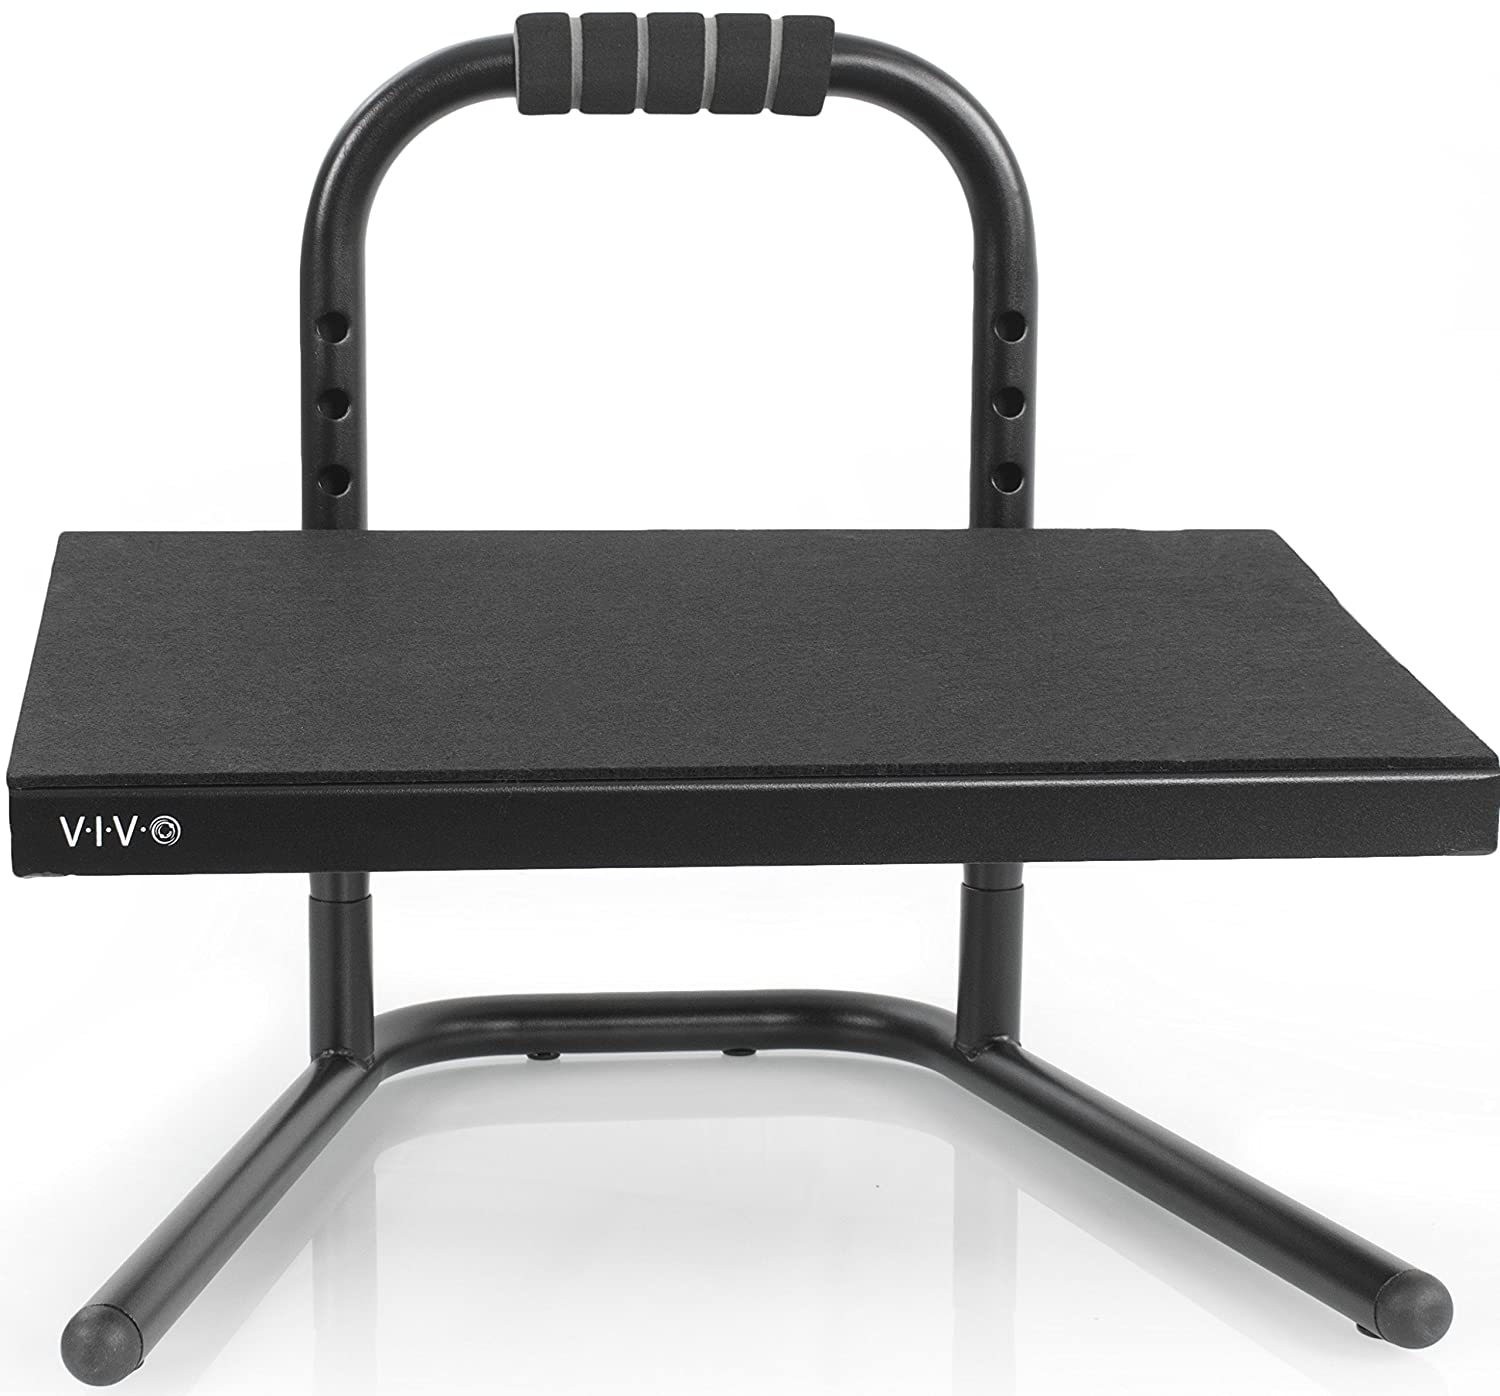 VIVO Black Ergonomic Height Adjustable Standing Foot Rest Relief Platform for Standing Desk (STAND-FT01)